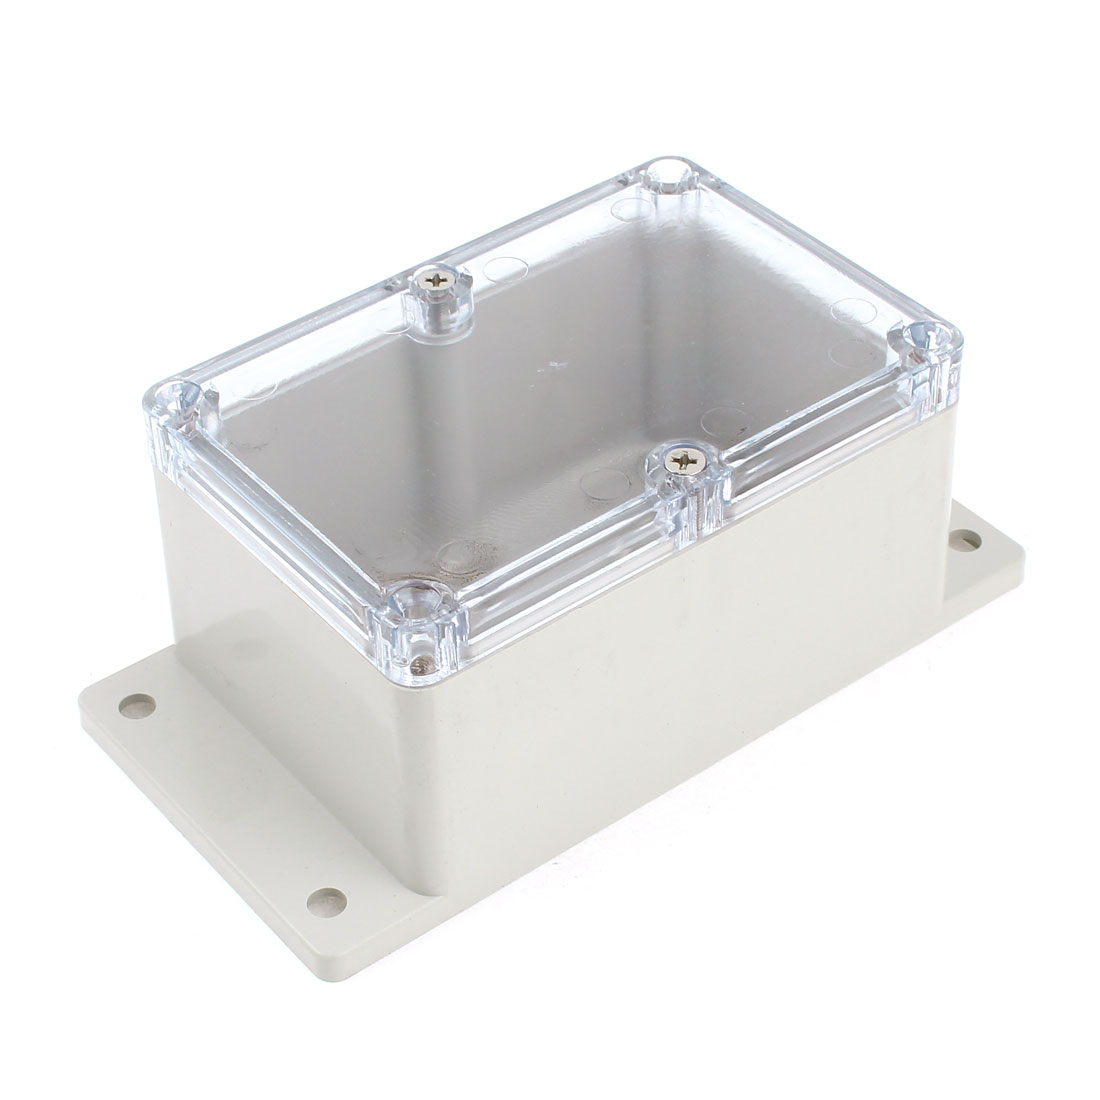 120mm x 81mm x 65mm Waterproof Plastic DIY Junction Box Power Protection Case